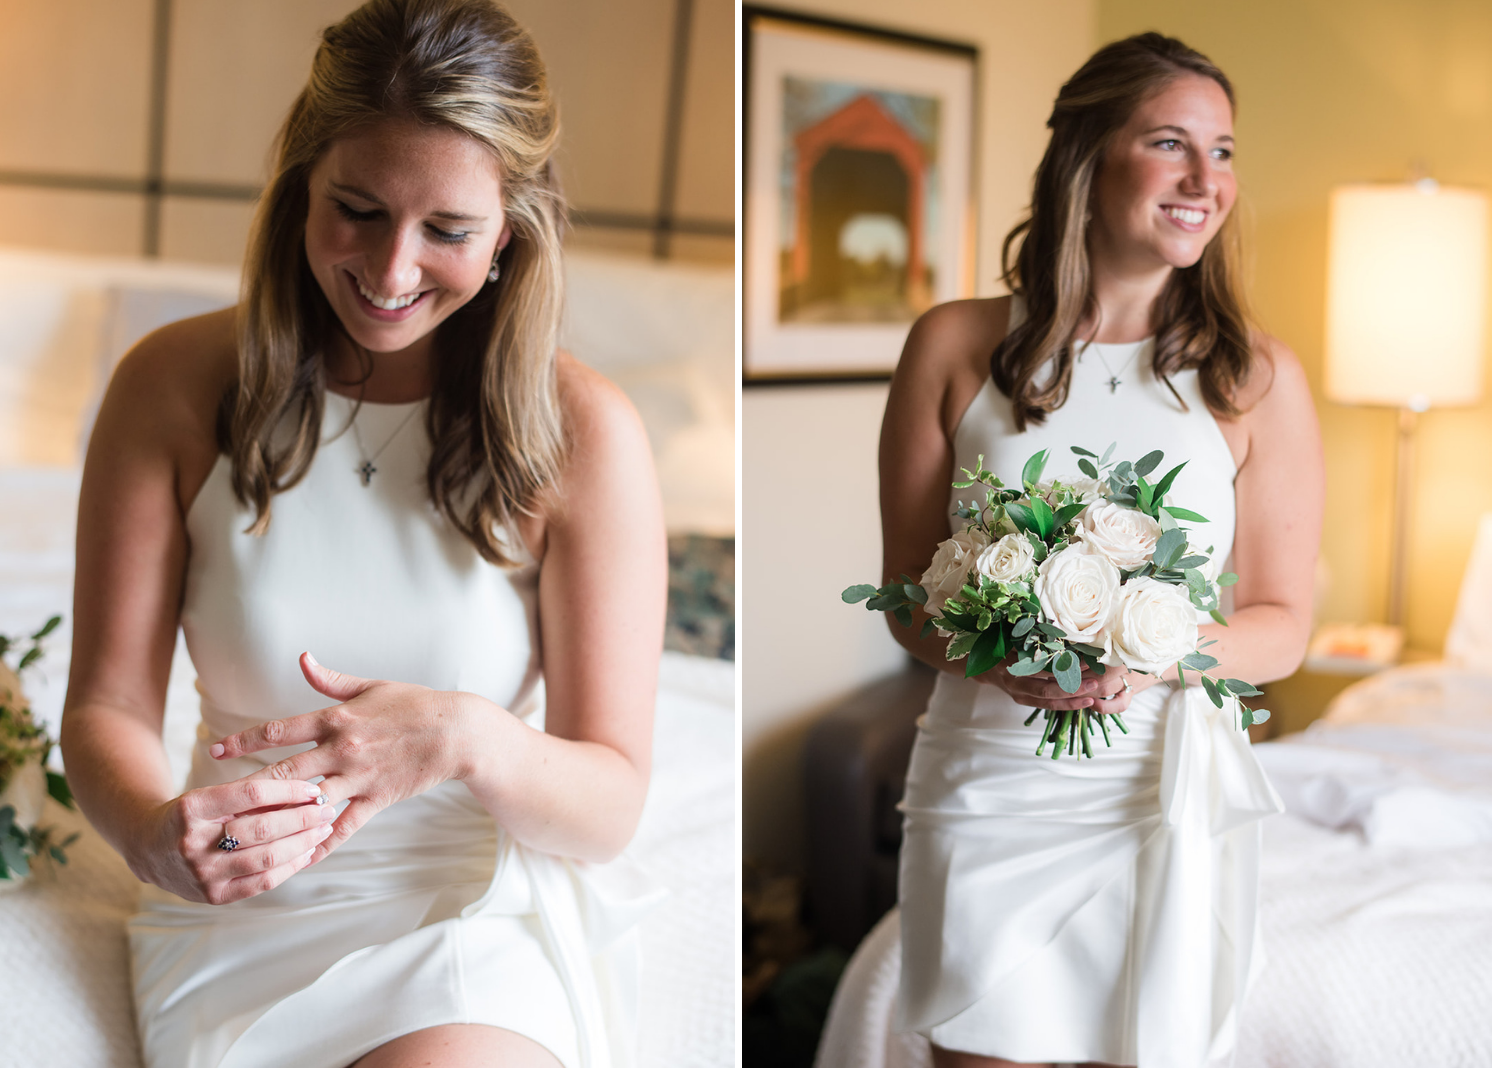 bride putting on her wedding ring and bride smiling as she holds her wedding bouquet